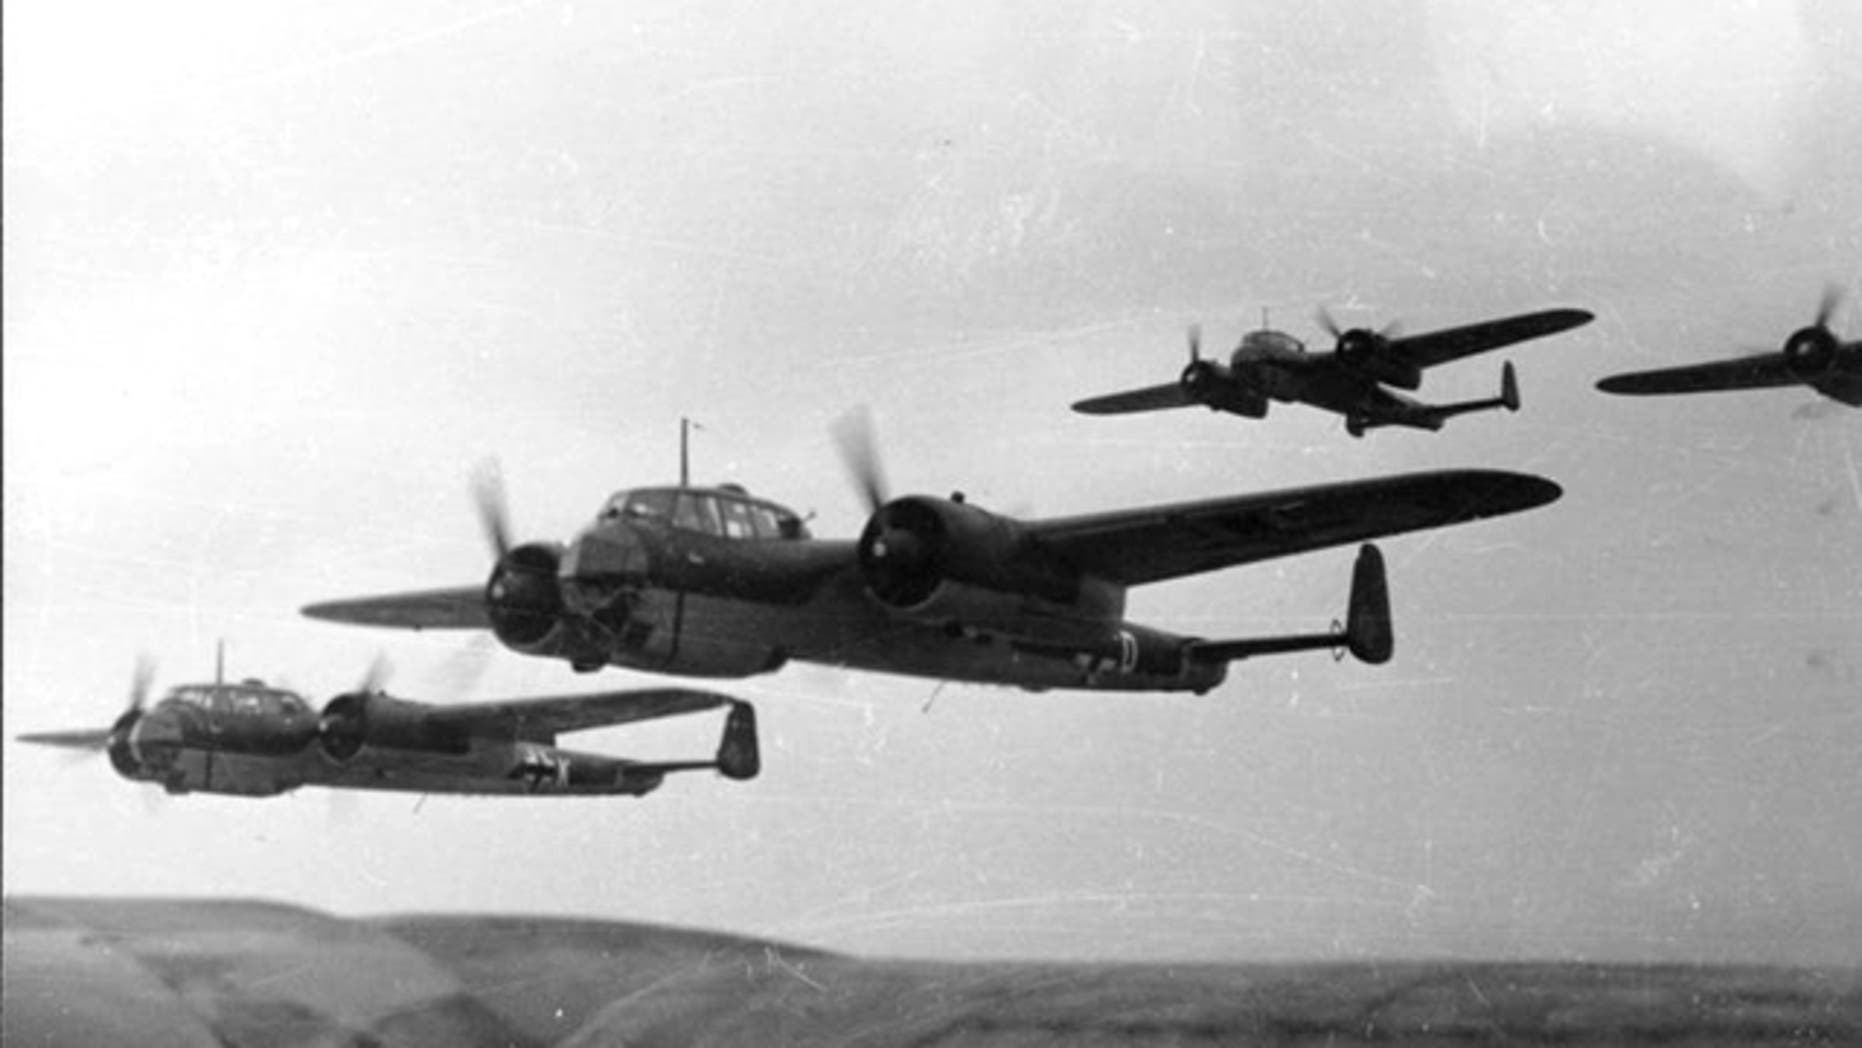 A formation of Dornier Do 17 planes flies in 1940.